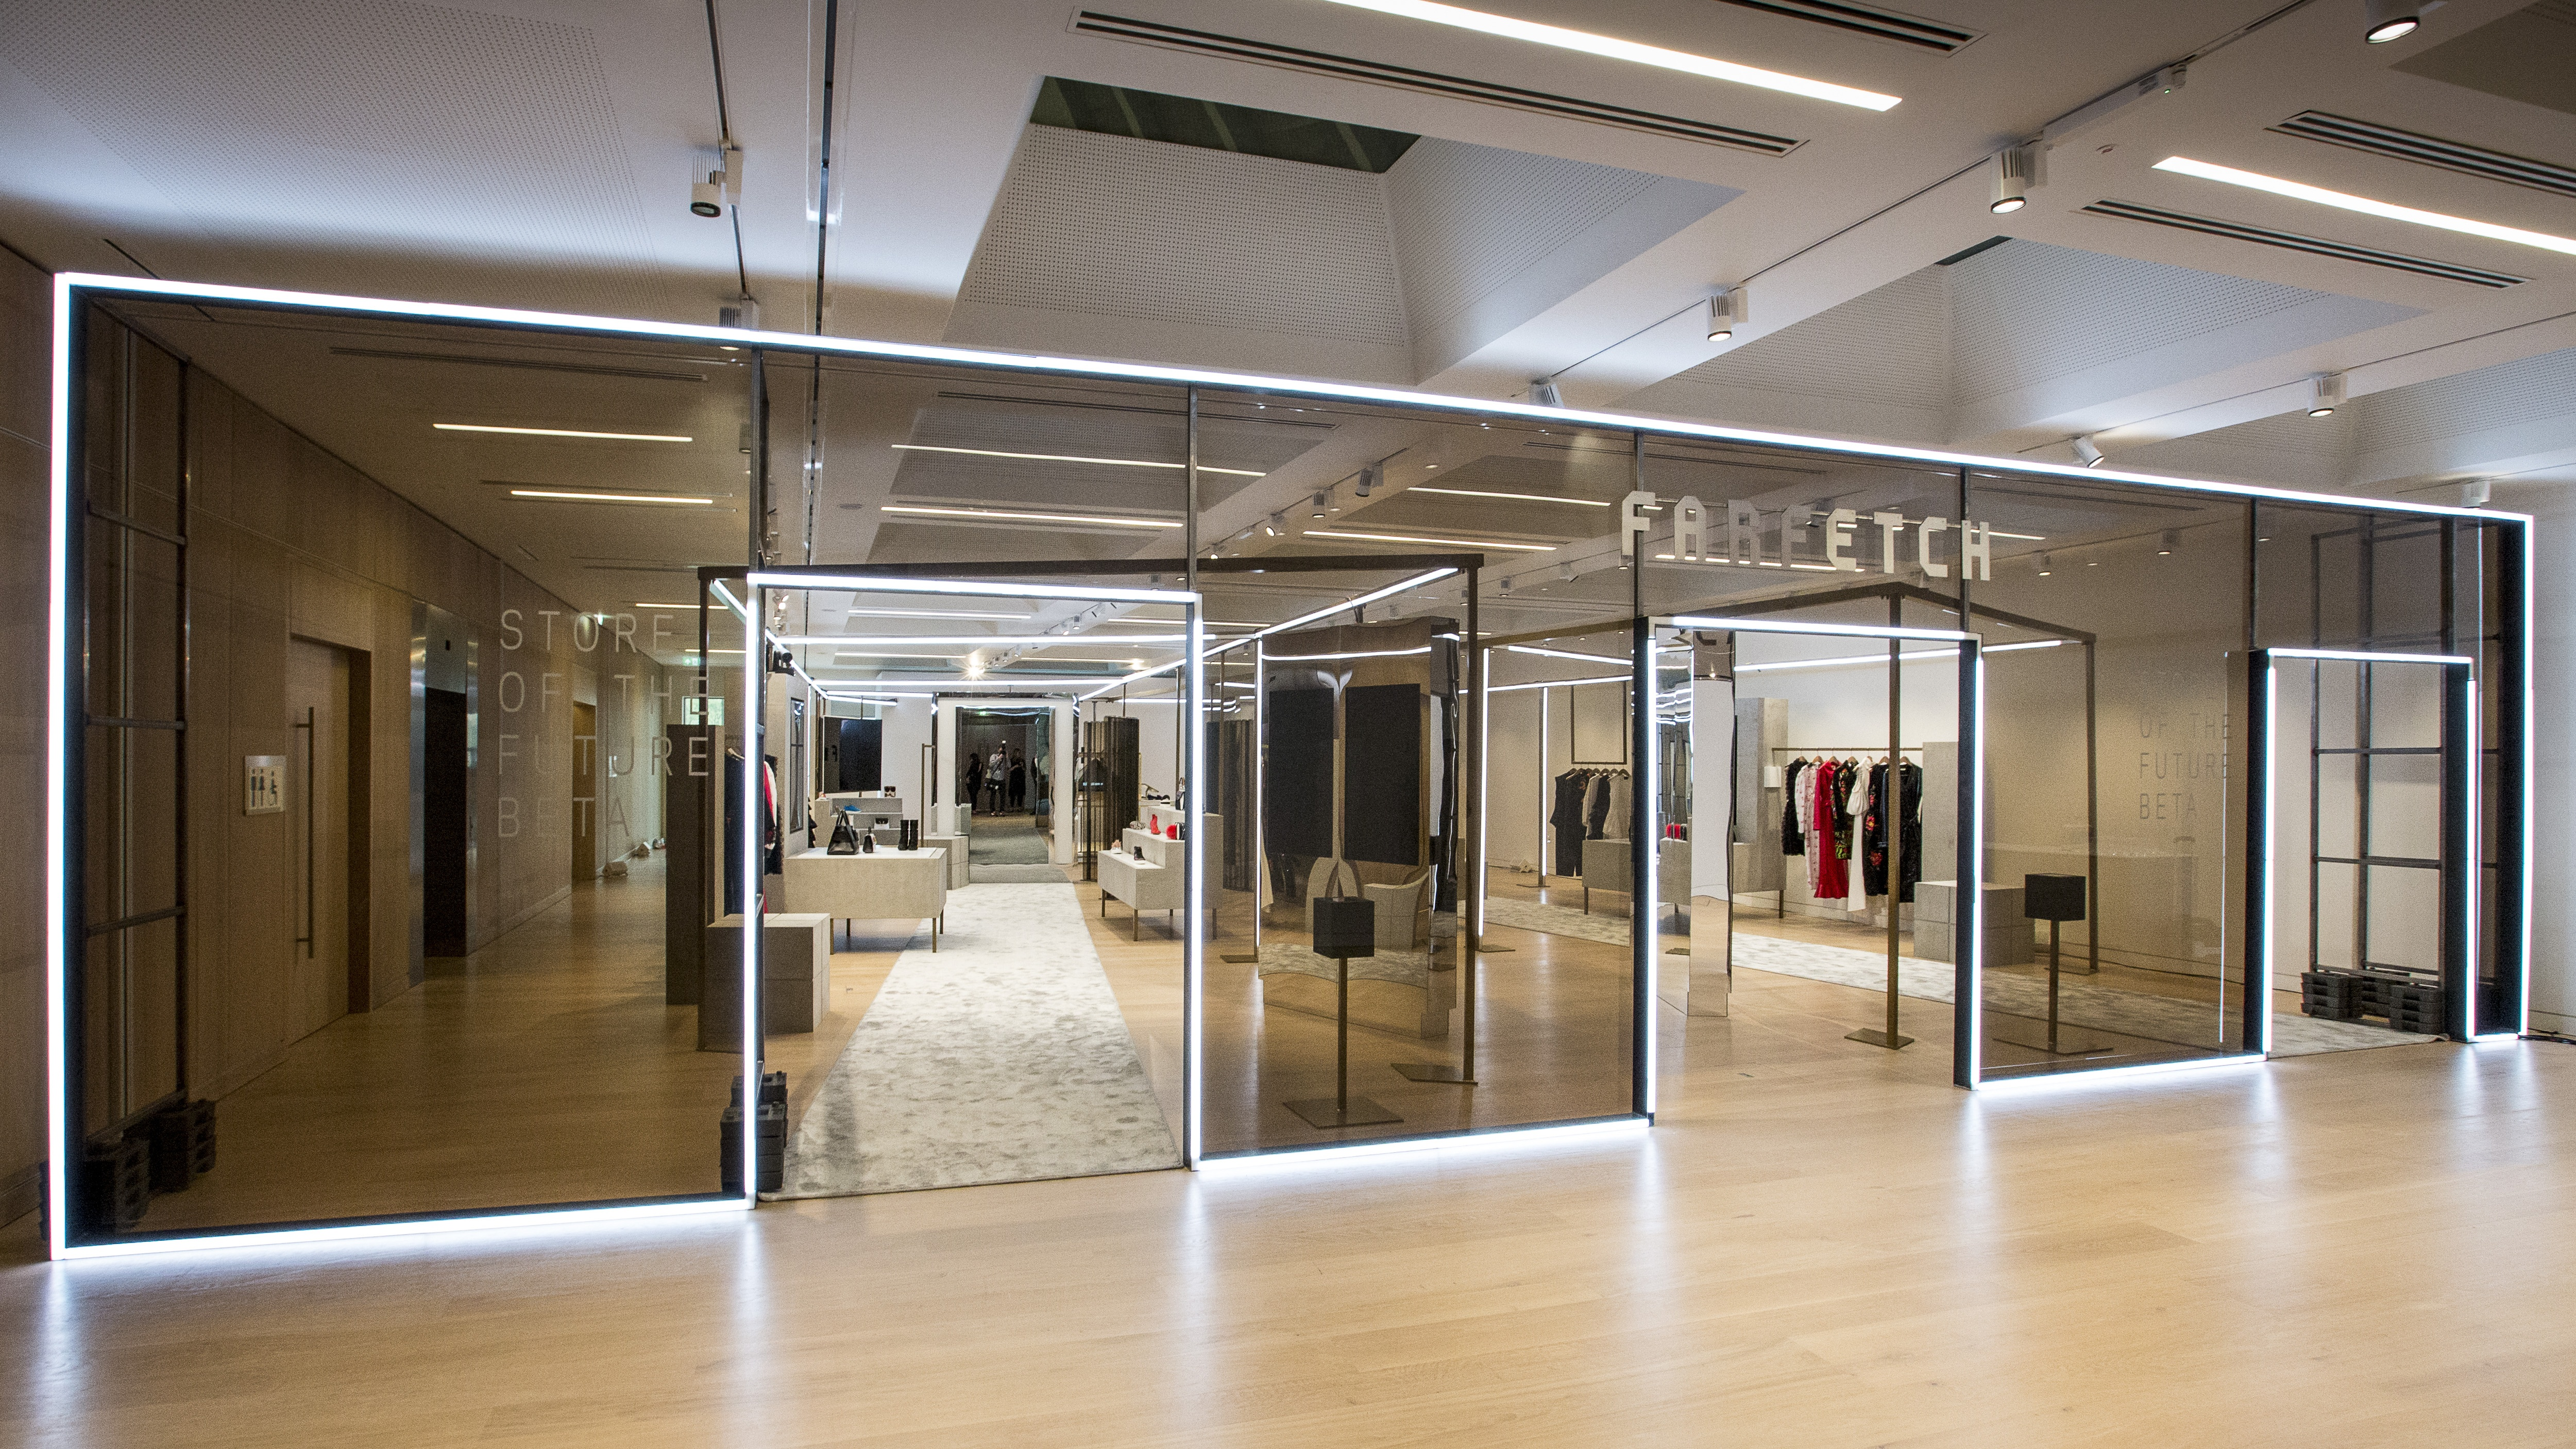 1c841e5af38 Nike, Amazon and Farfetch are pioneering the future of retail with ...